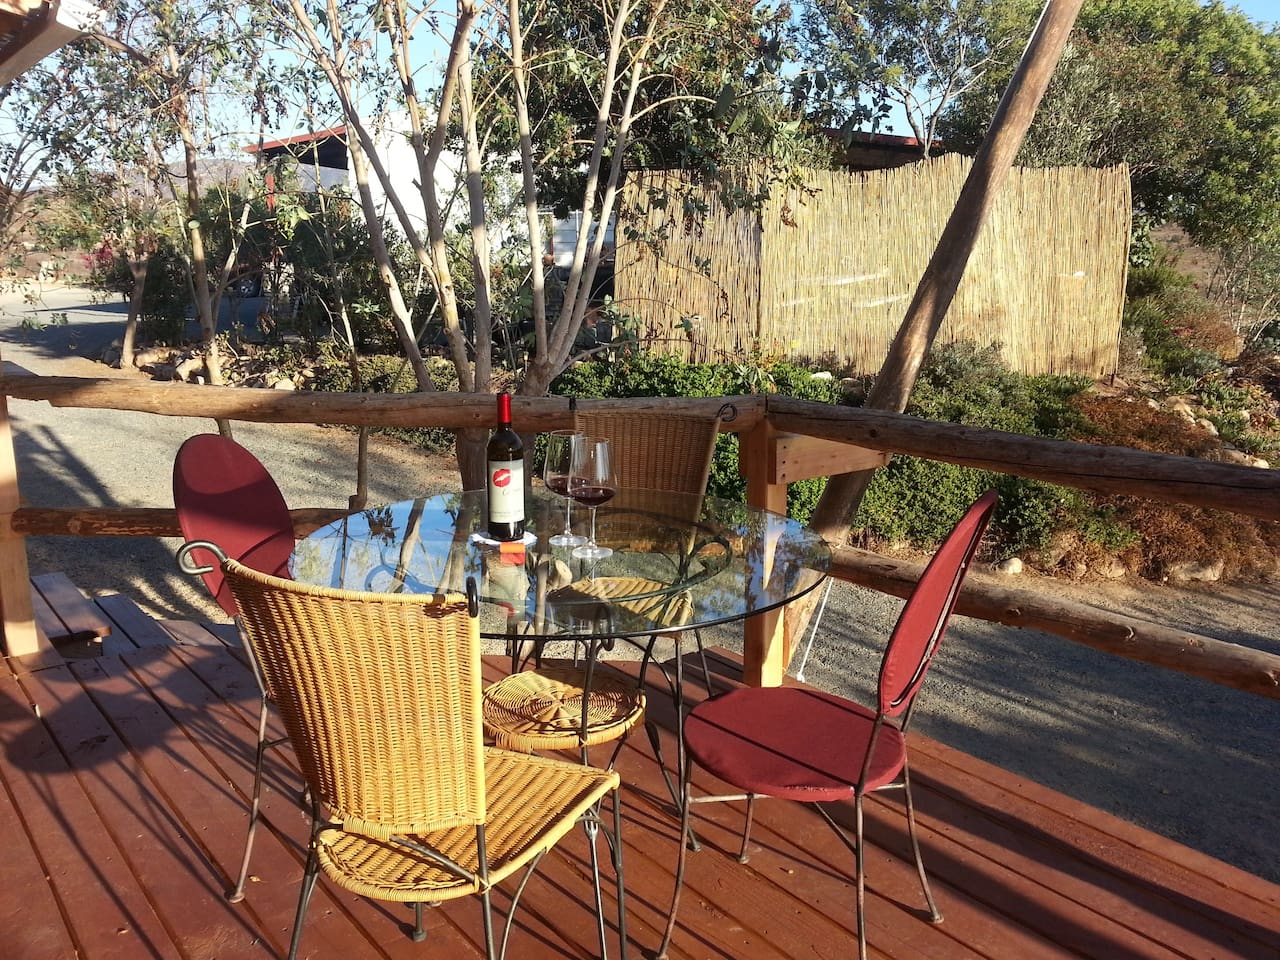 Enjoy a glass of wine or morning coffee on your private attached deck.